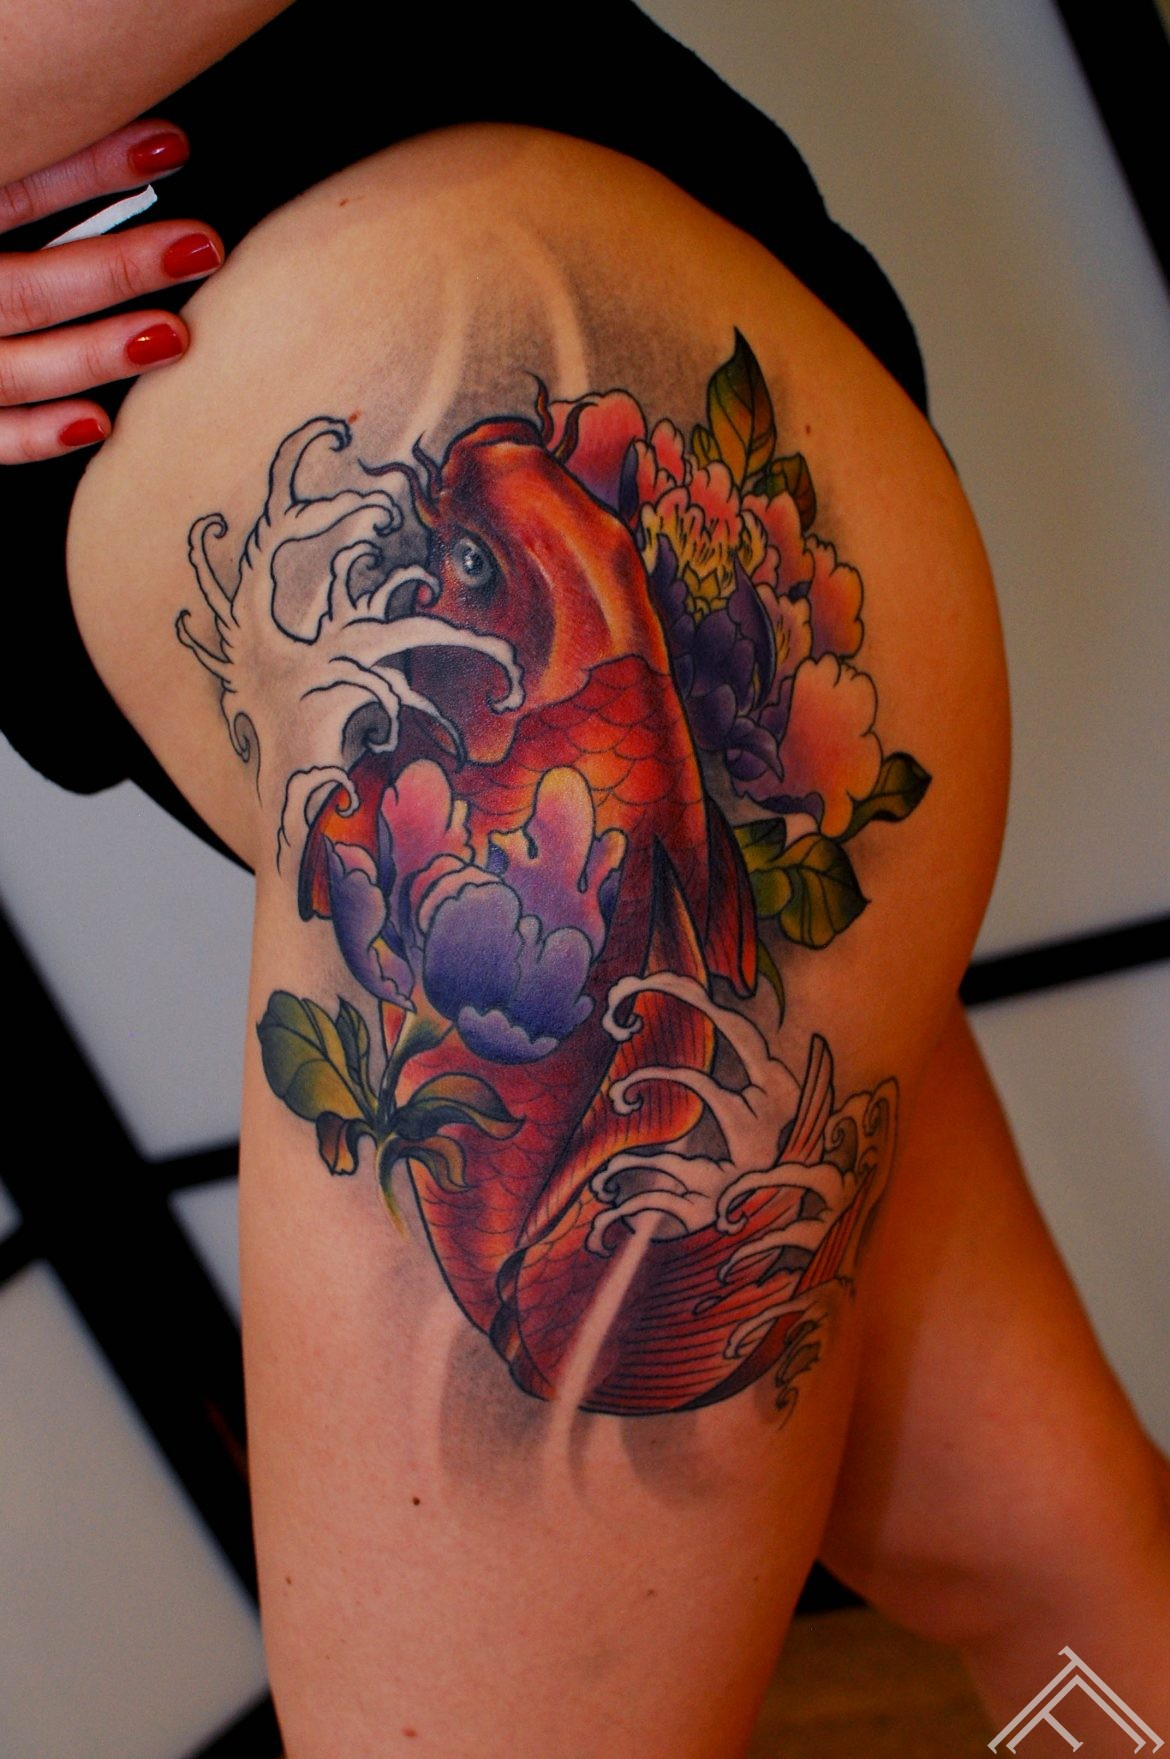 marispavlo_koifish_japan_tattoo_tattoofrequency_riga